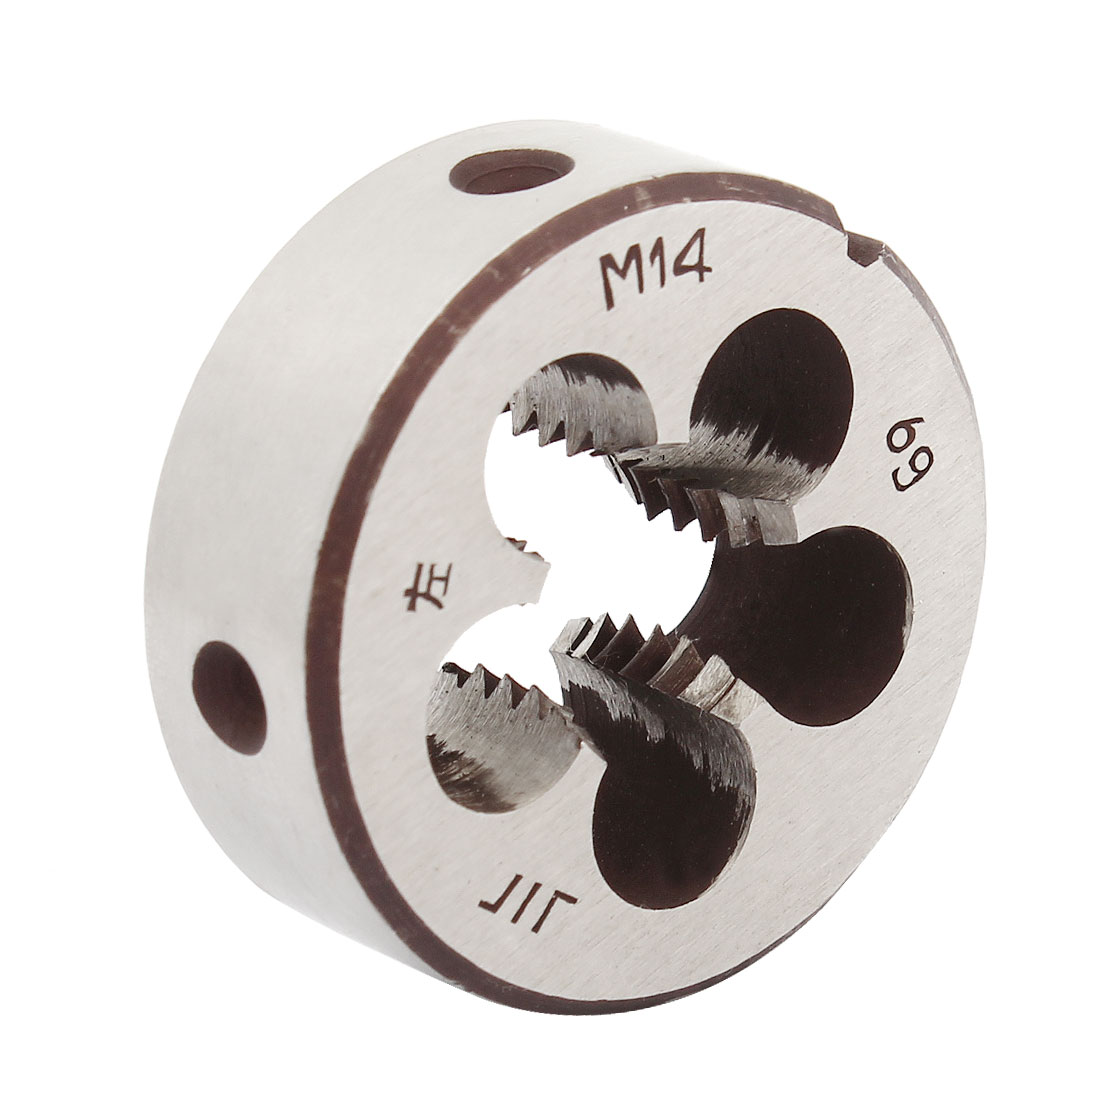 38mm Outside Dia 14mm Thickness M14 Round Thread Die Left Hand